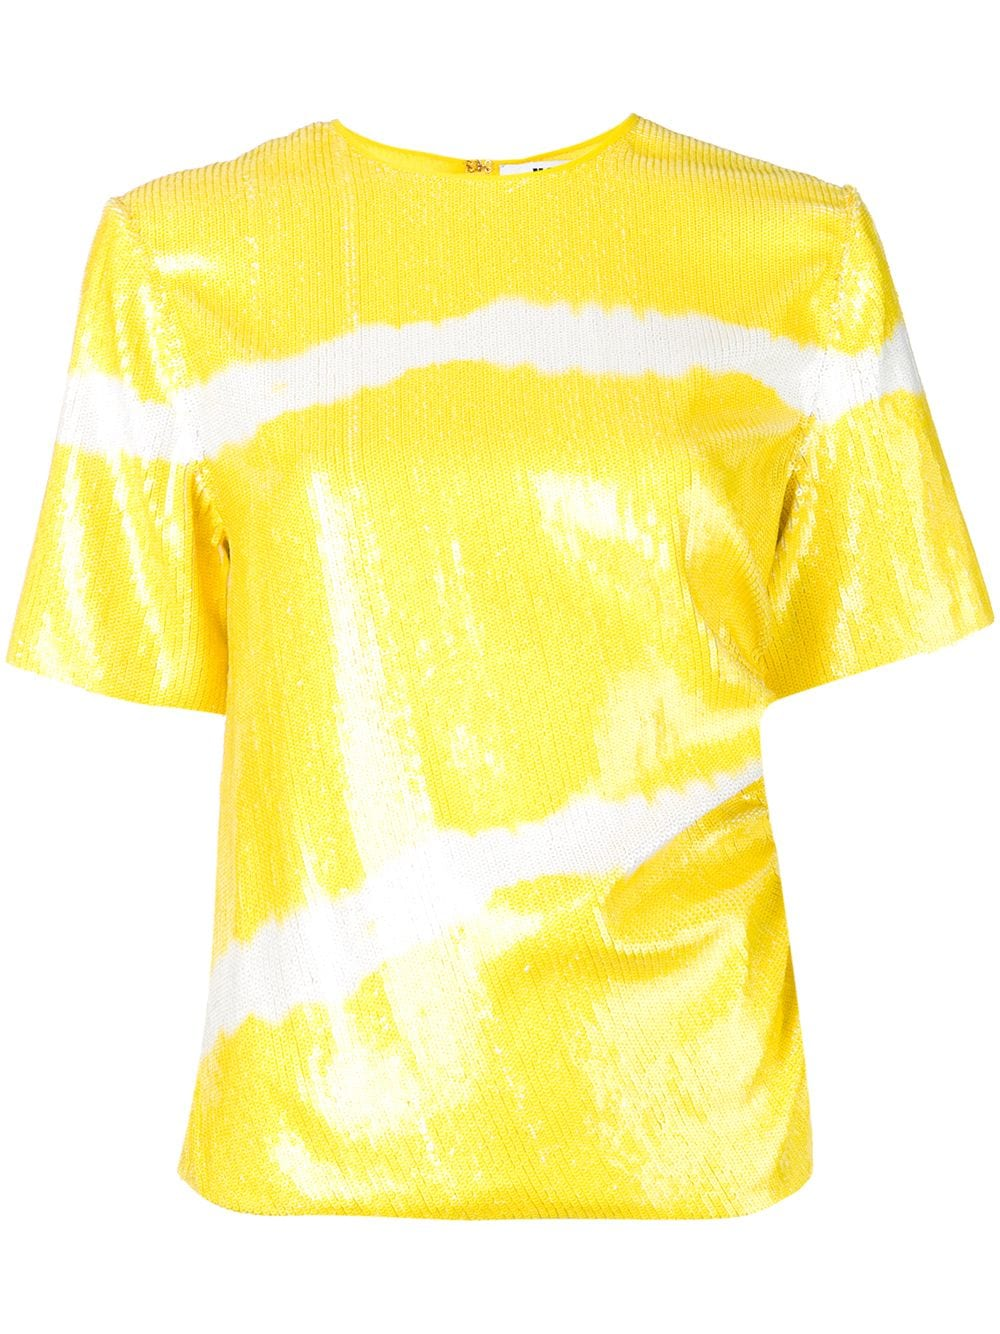 ce530f6c042bab Striped Yellow Shirt With Sequins - MSGM - Russocapri